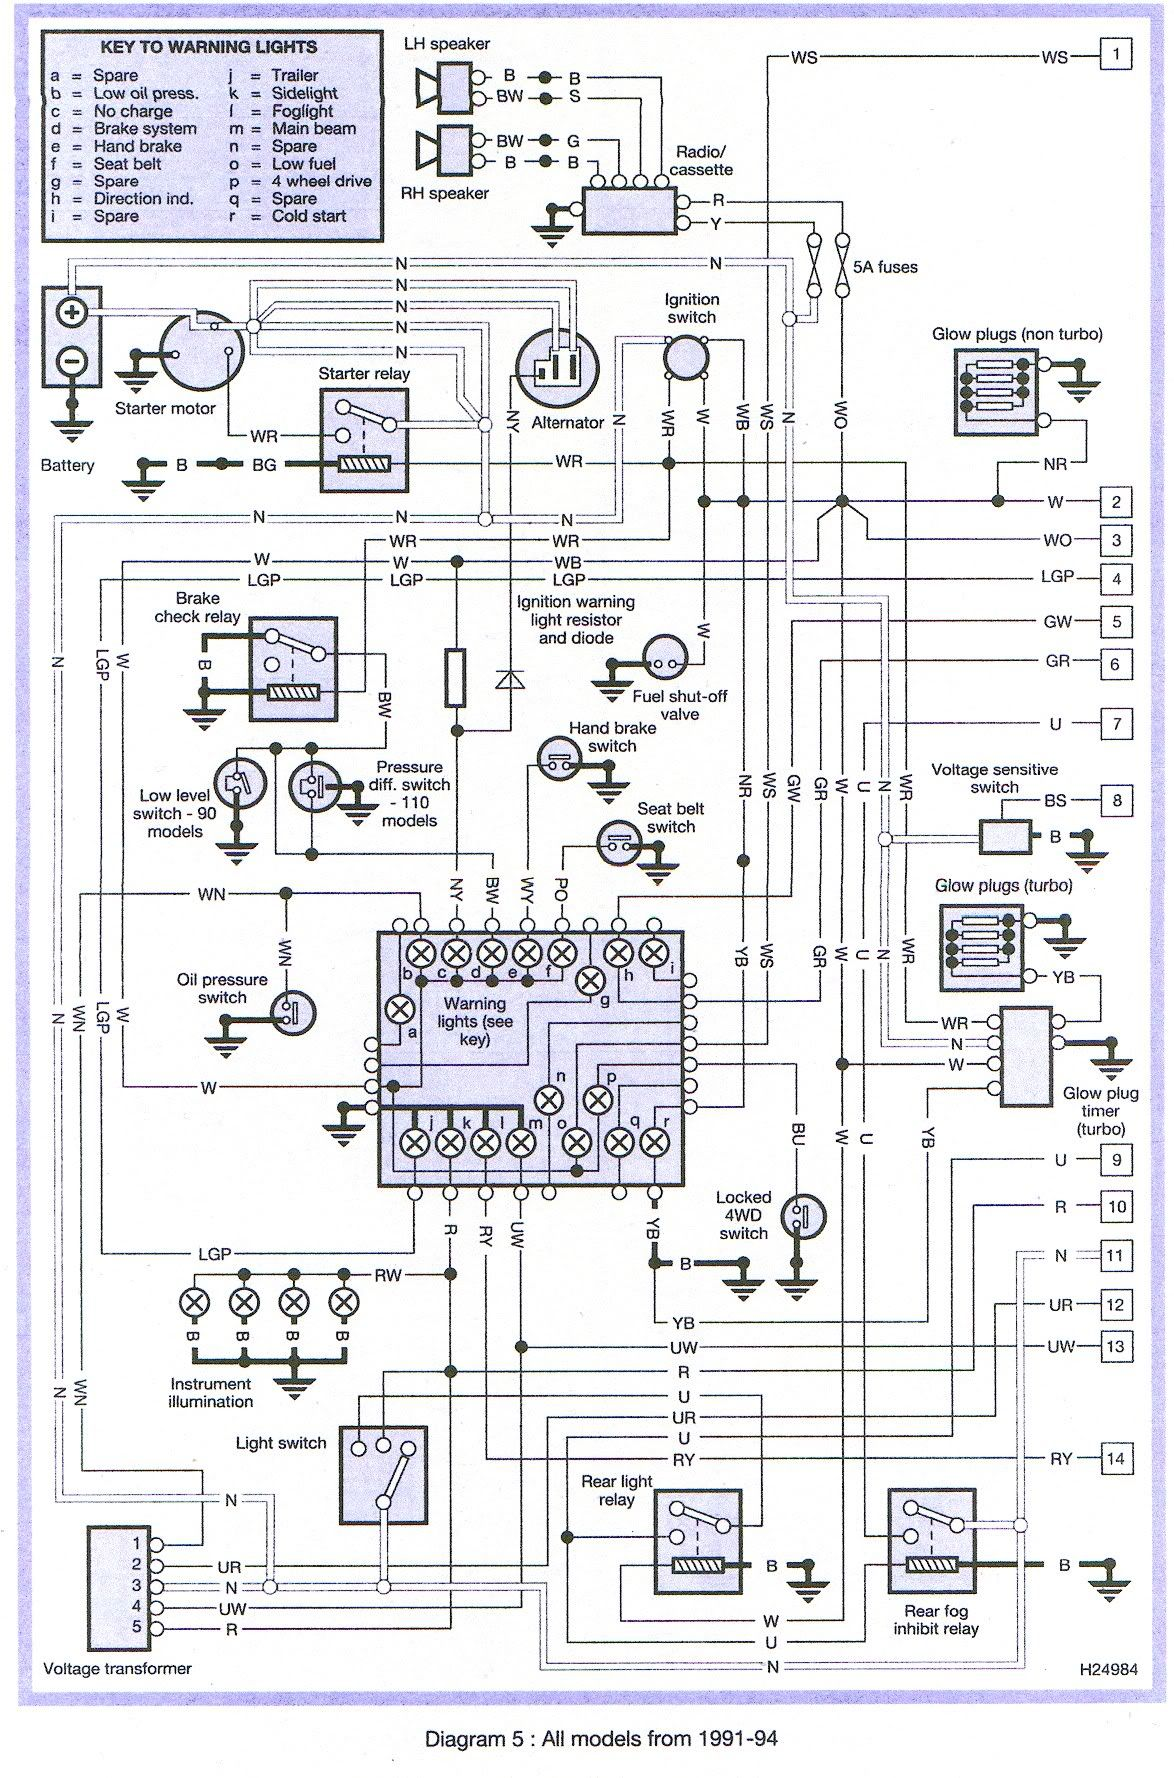 medium resolution of for ge oven wiring diagram jbp26gv3ad wiring diagram centre for ge oven wiring diagram jbp26gv3ad